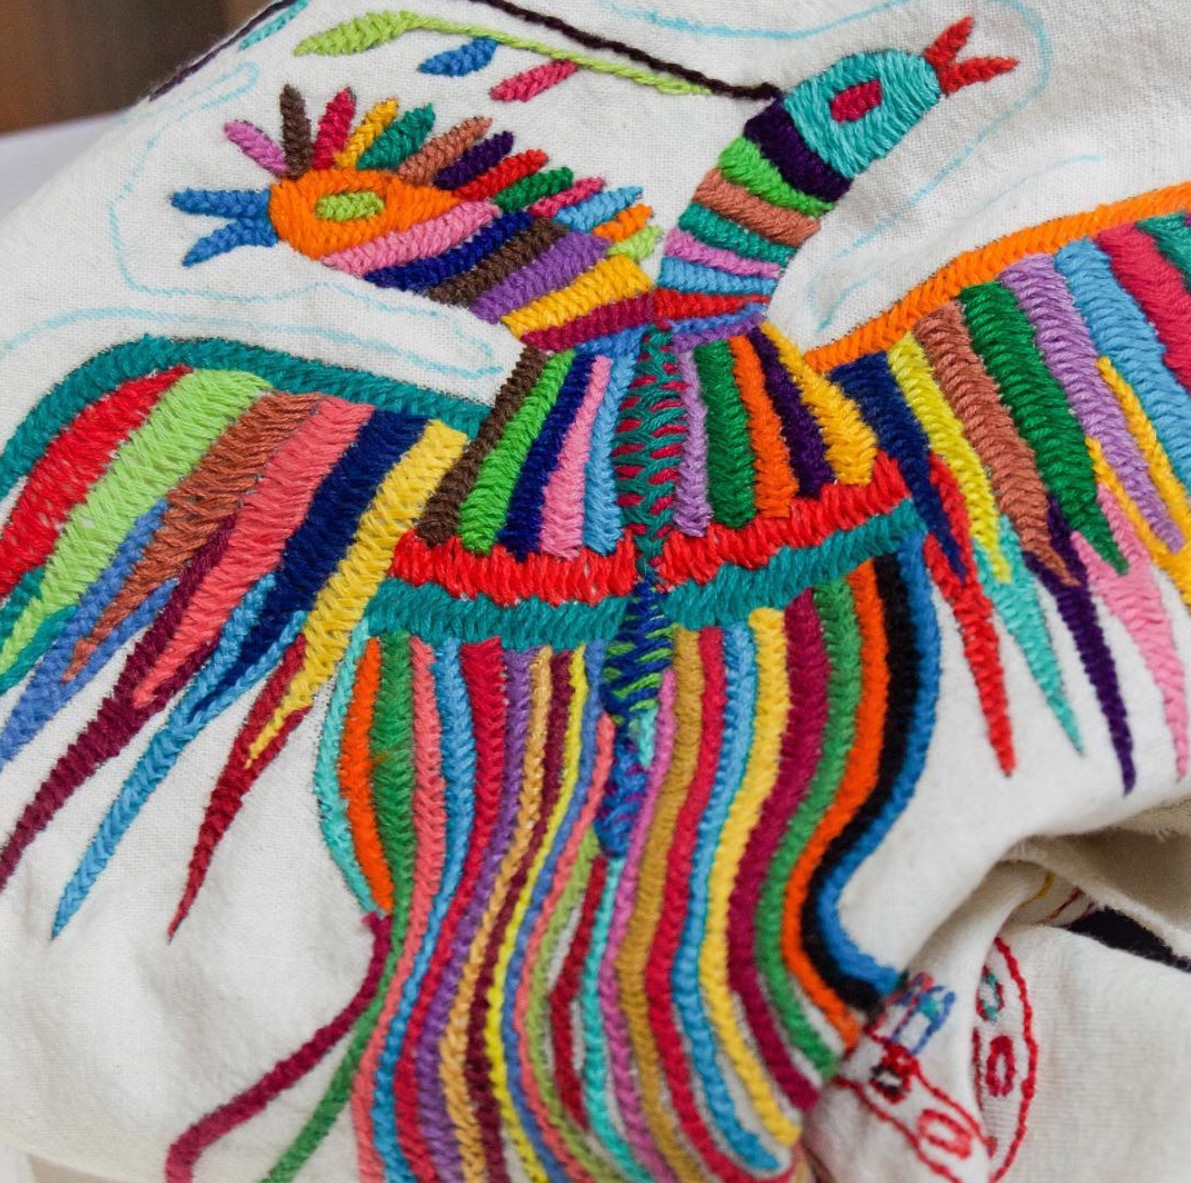 10 Embroidery Artists On Instagram You Need To Follow The Fiber Studio